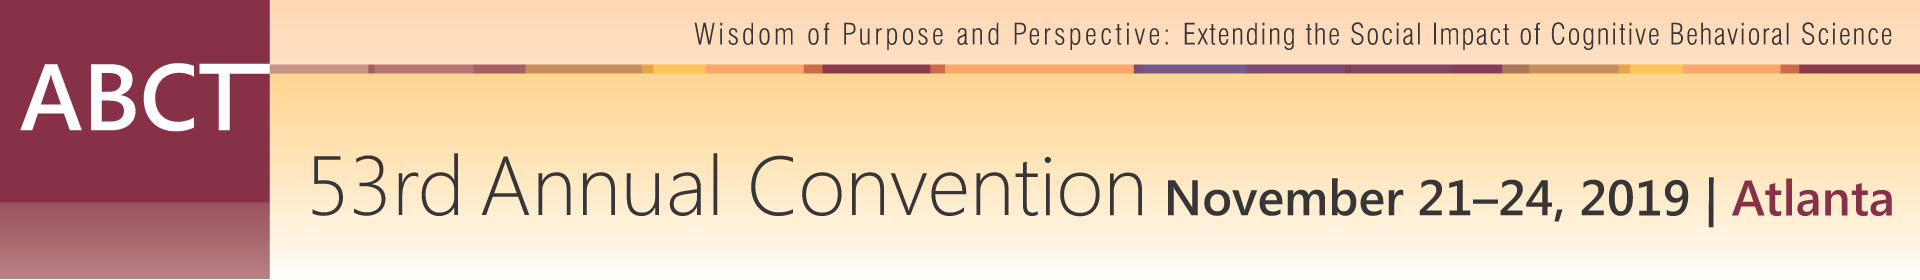 ABCT 53rd Annual Convention Event Banner